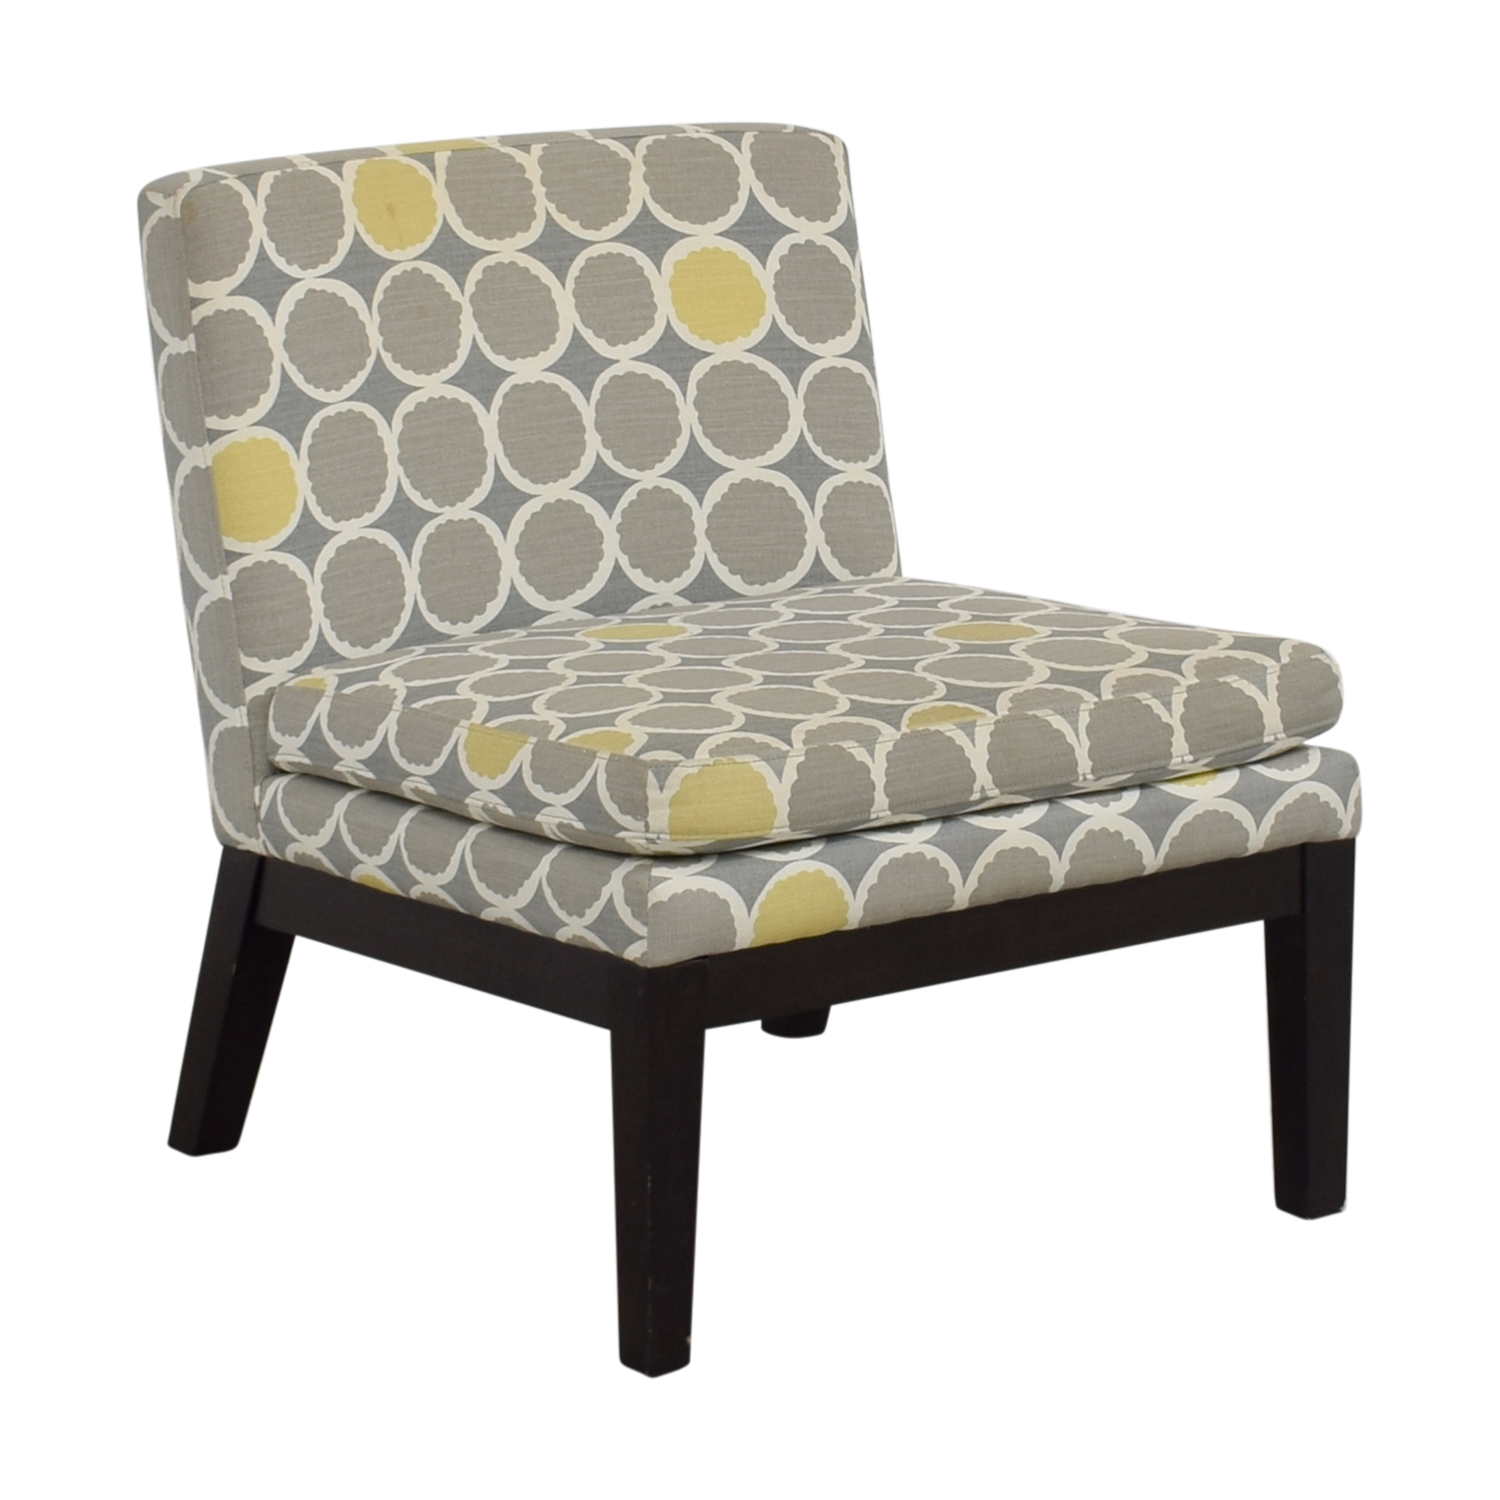 ... West Elm West Elm Grey Yellow And White Accent Chair Discount ...